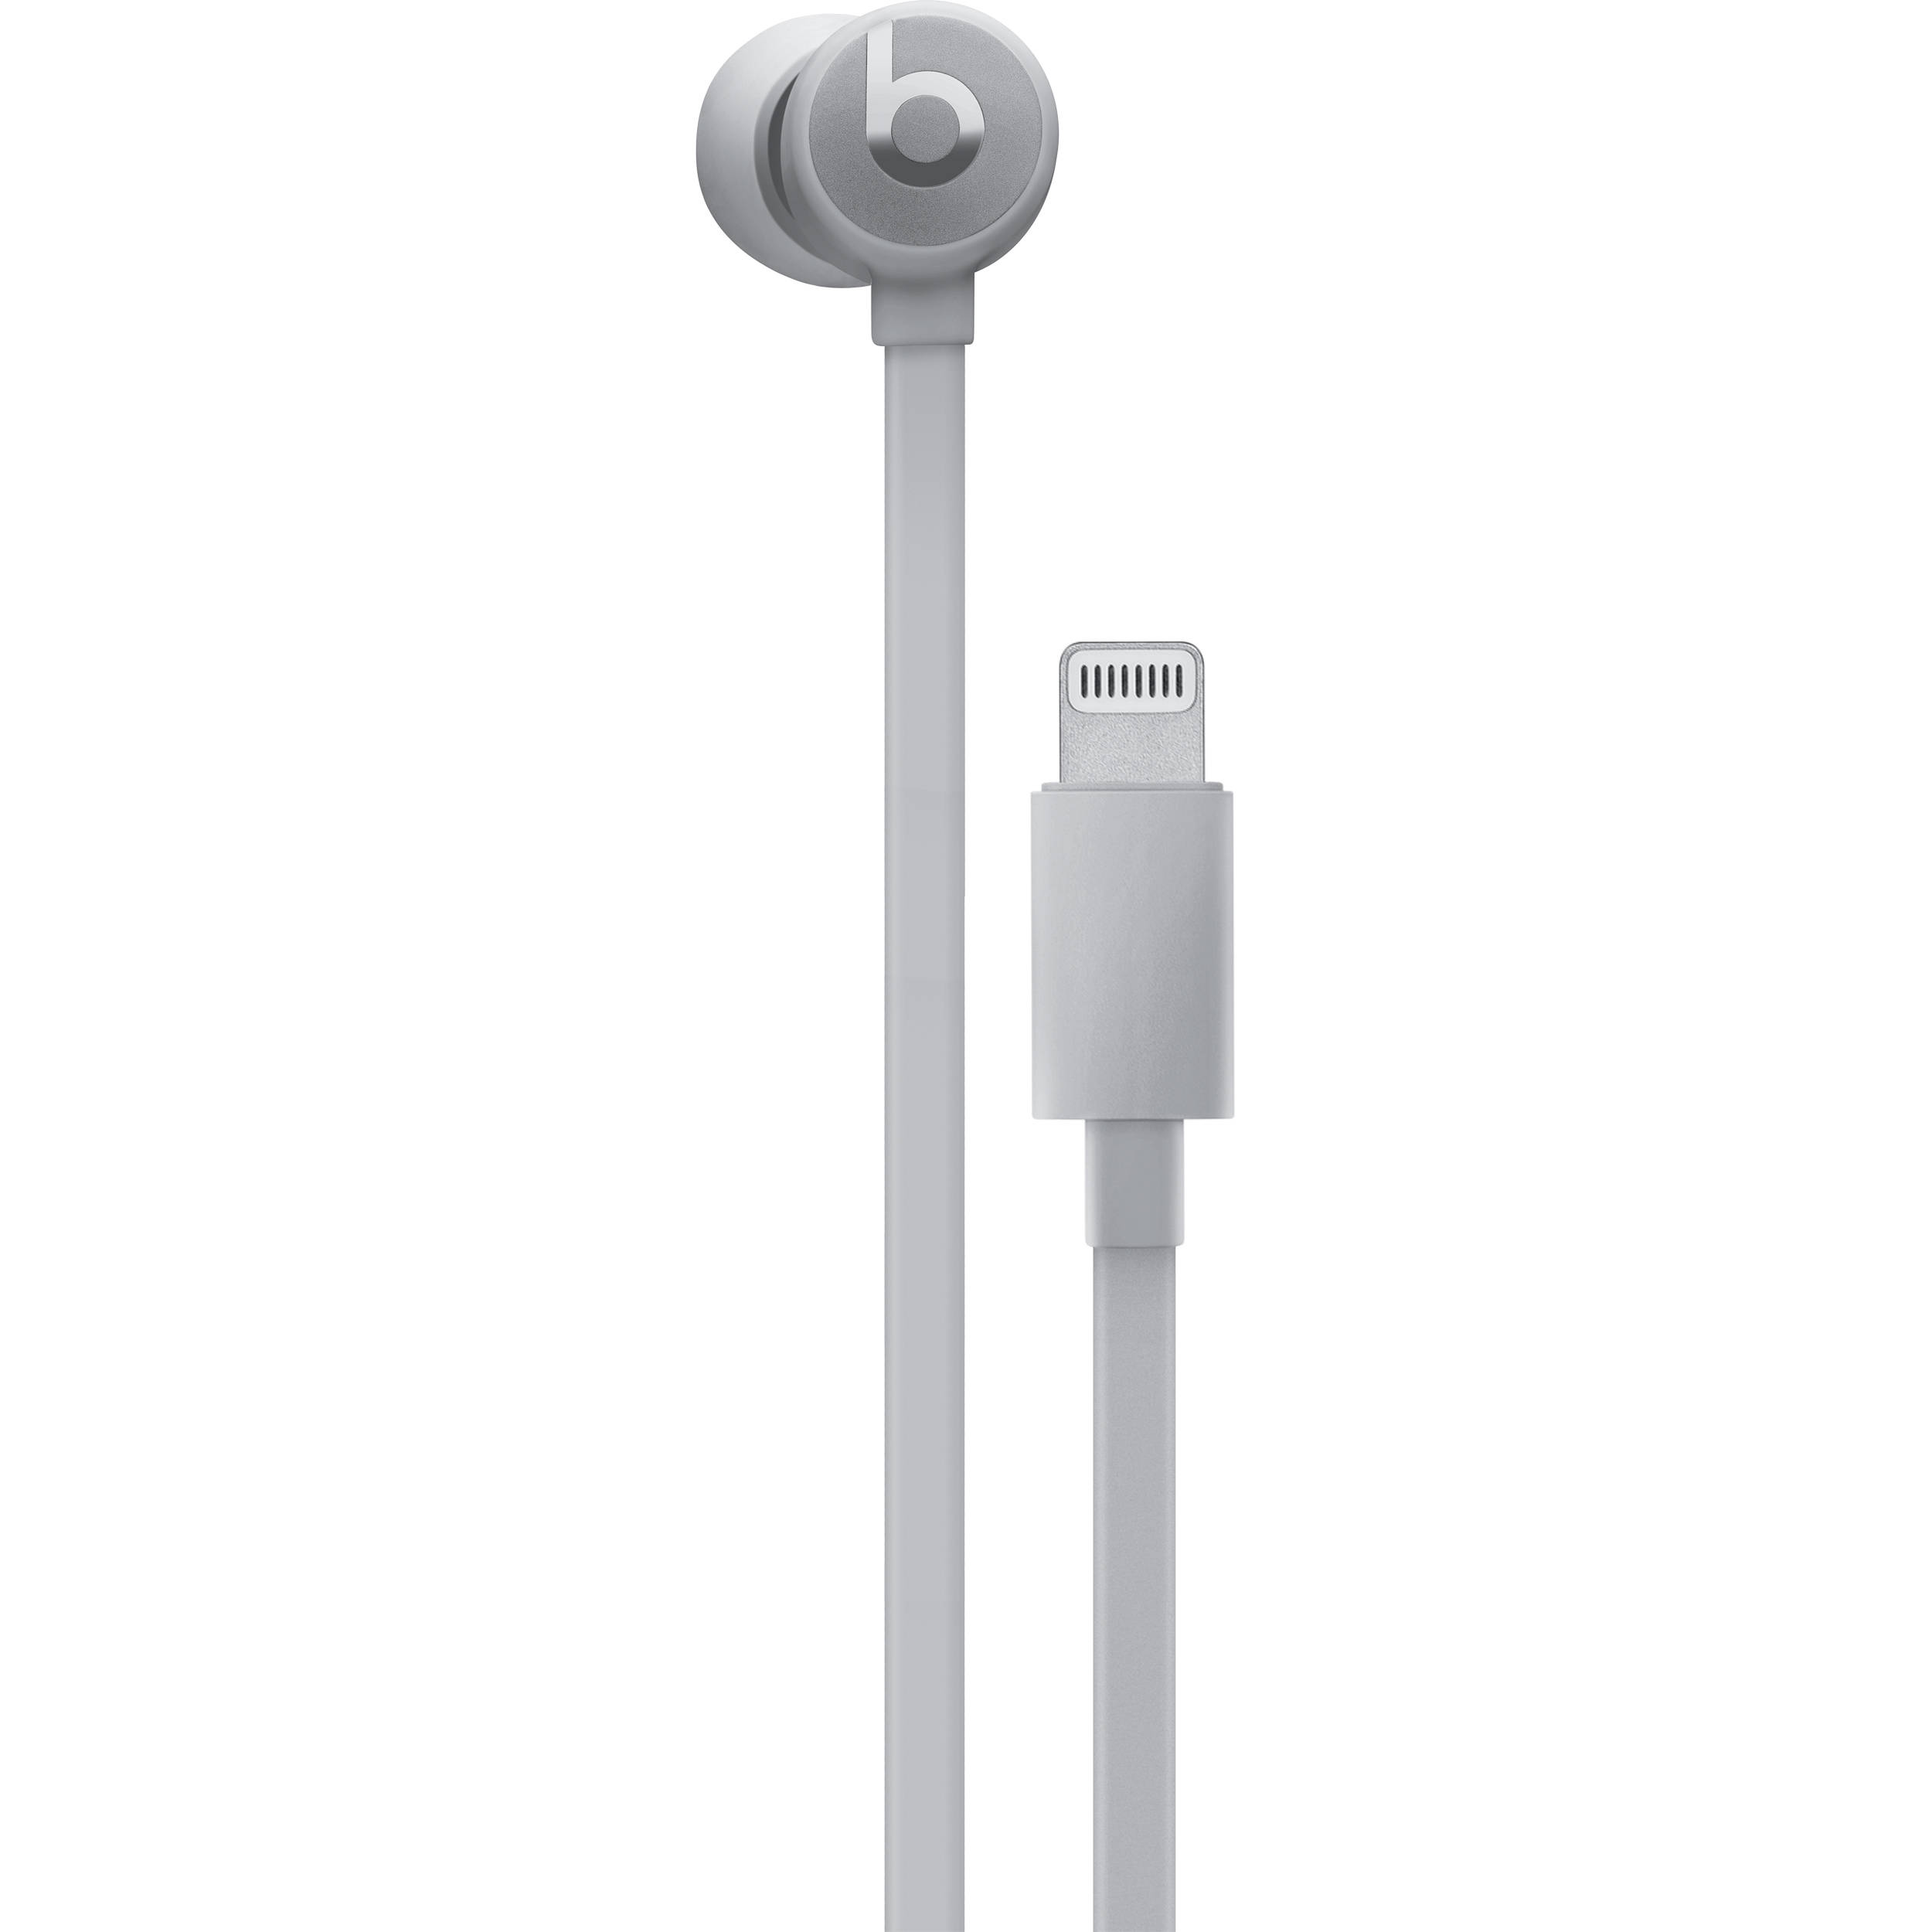 Beats by Dr. Dre urBeats3 In-Ear Headphones with Lightning Connector (Satin Silver